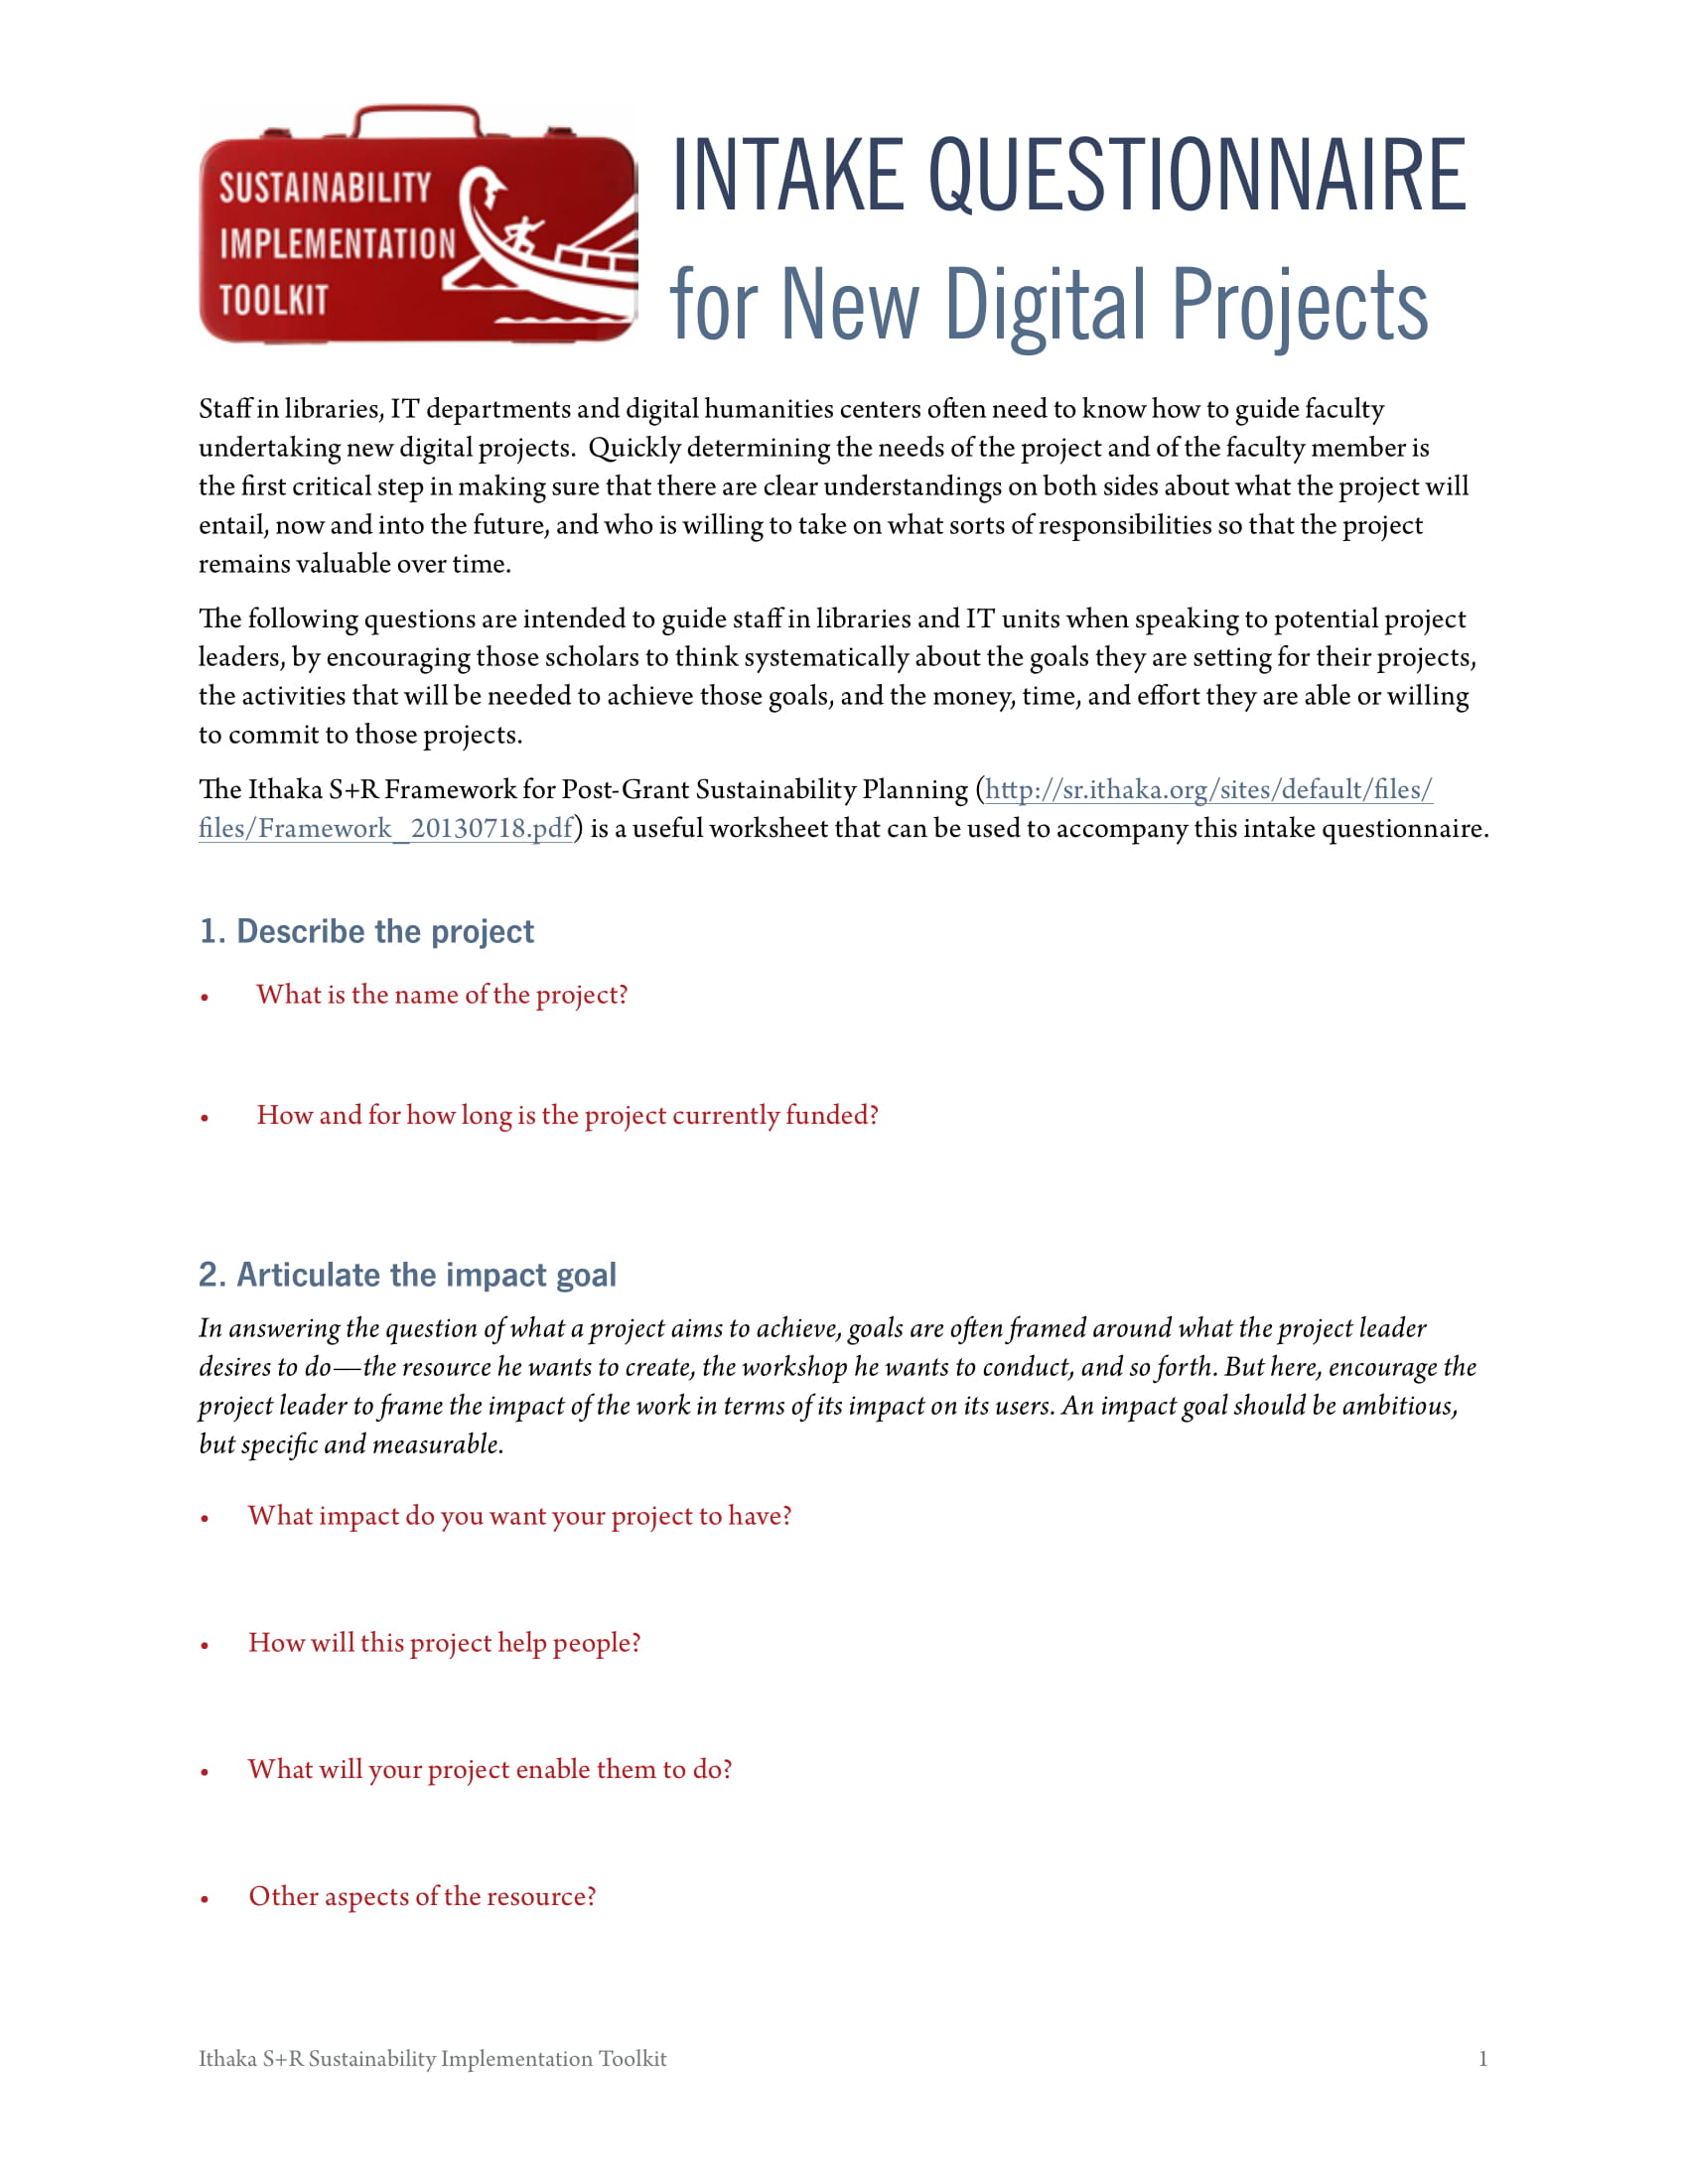 digital project intake questionnaire form 1